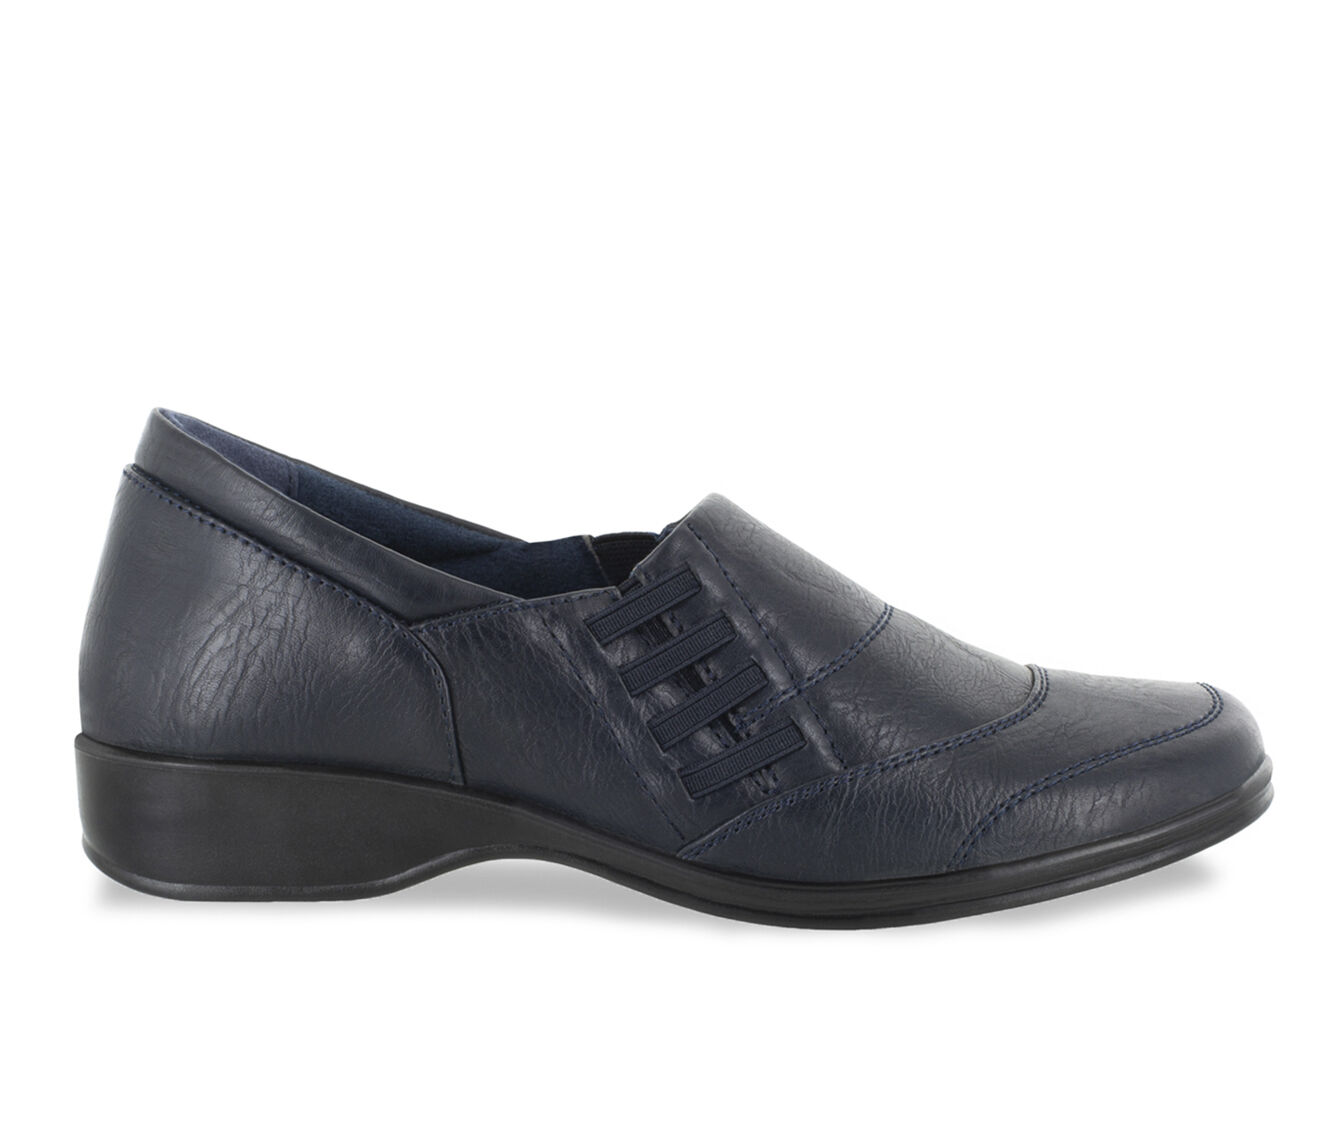 genuine online Women's Easy Street Avenue Shoes Navy